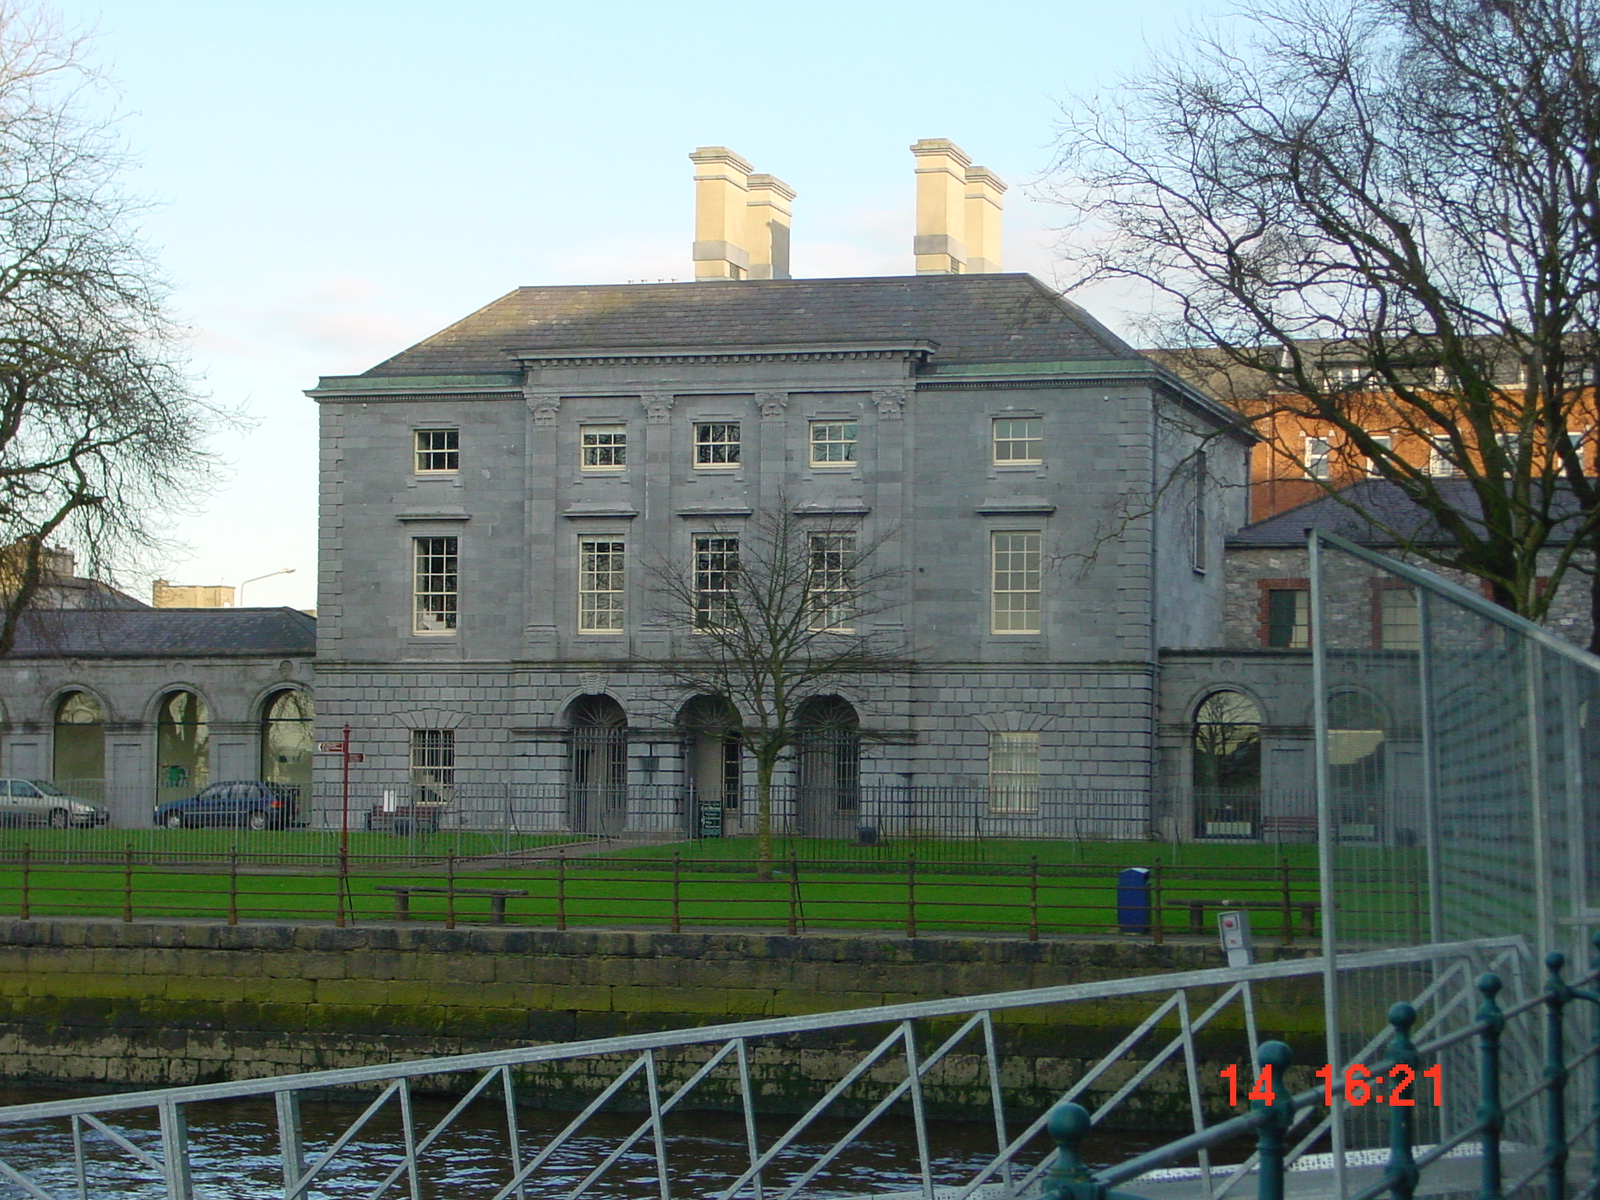 Dukart's Custom House (now the hunt Museum) in Limerick